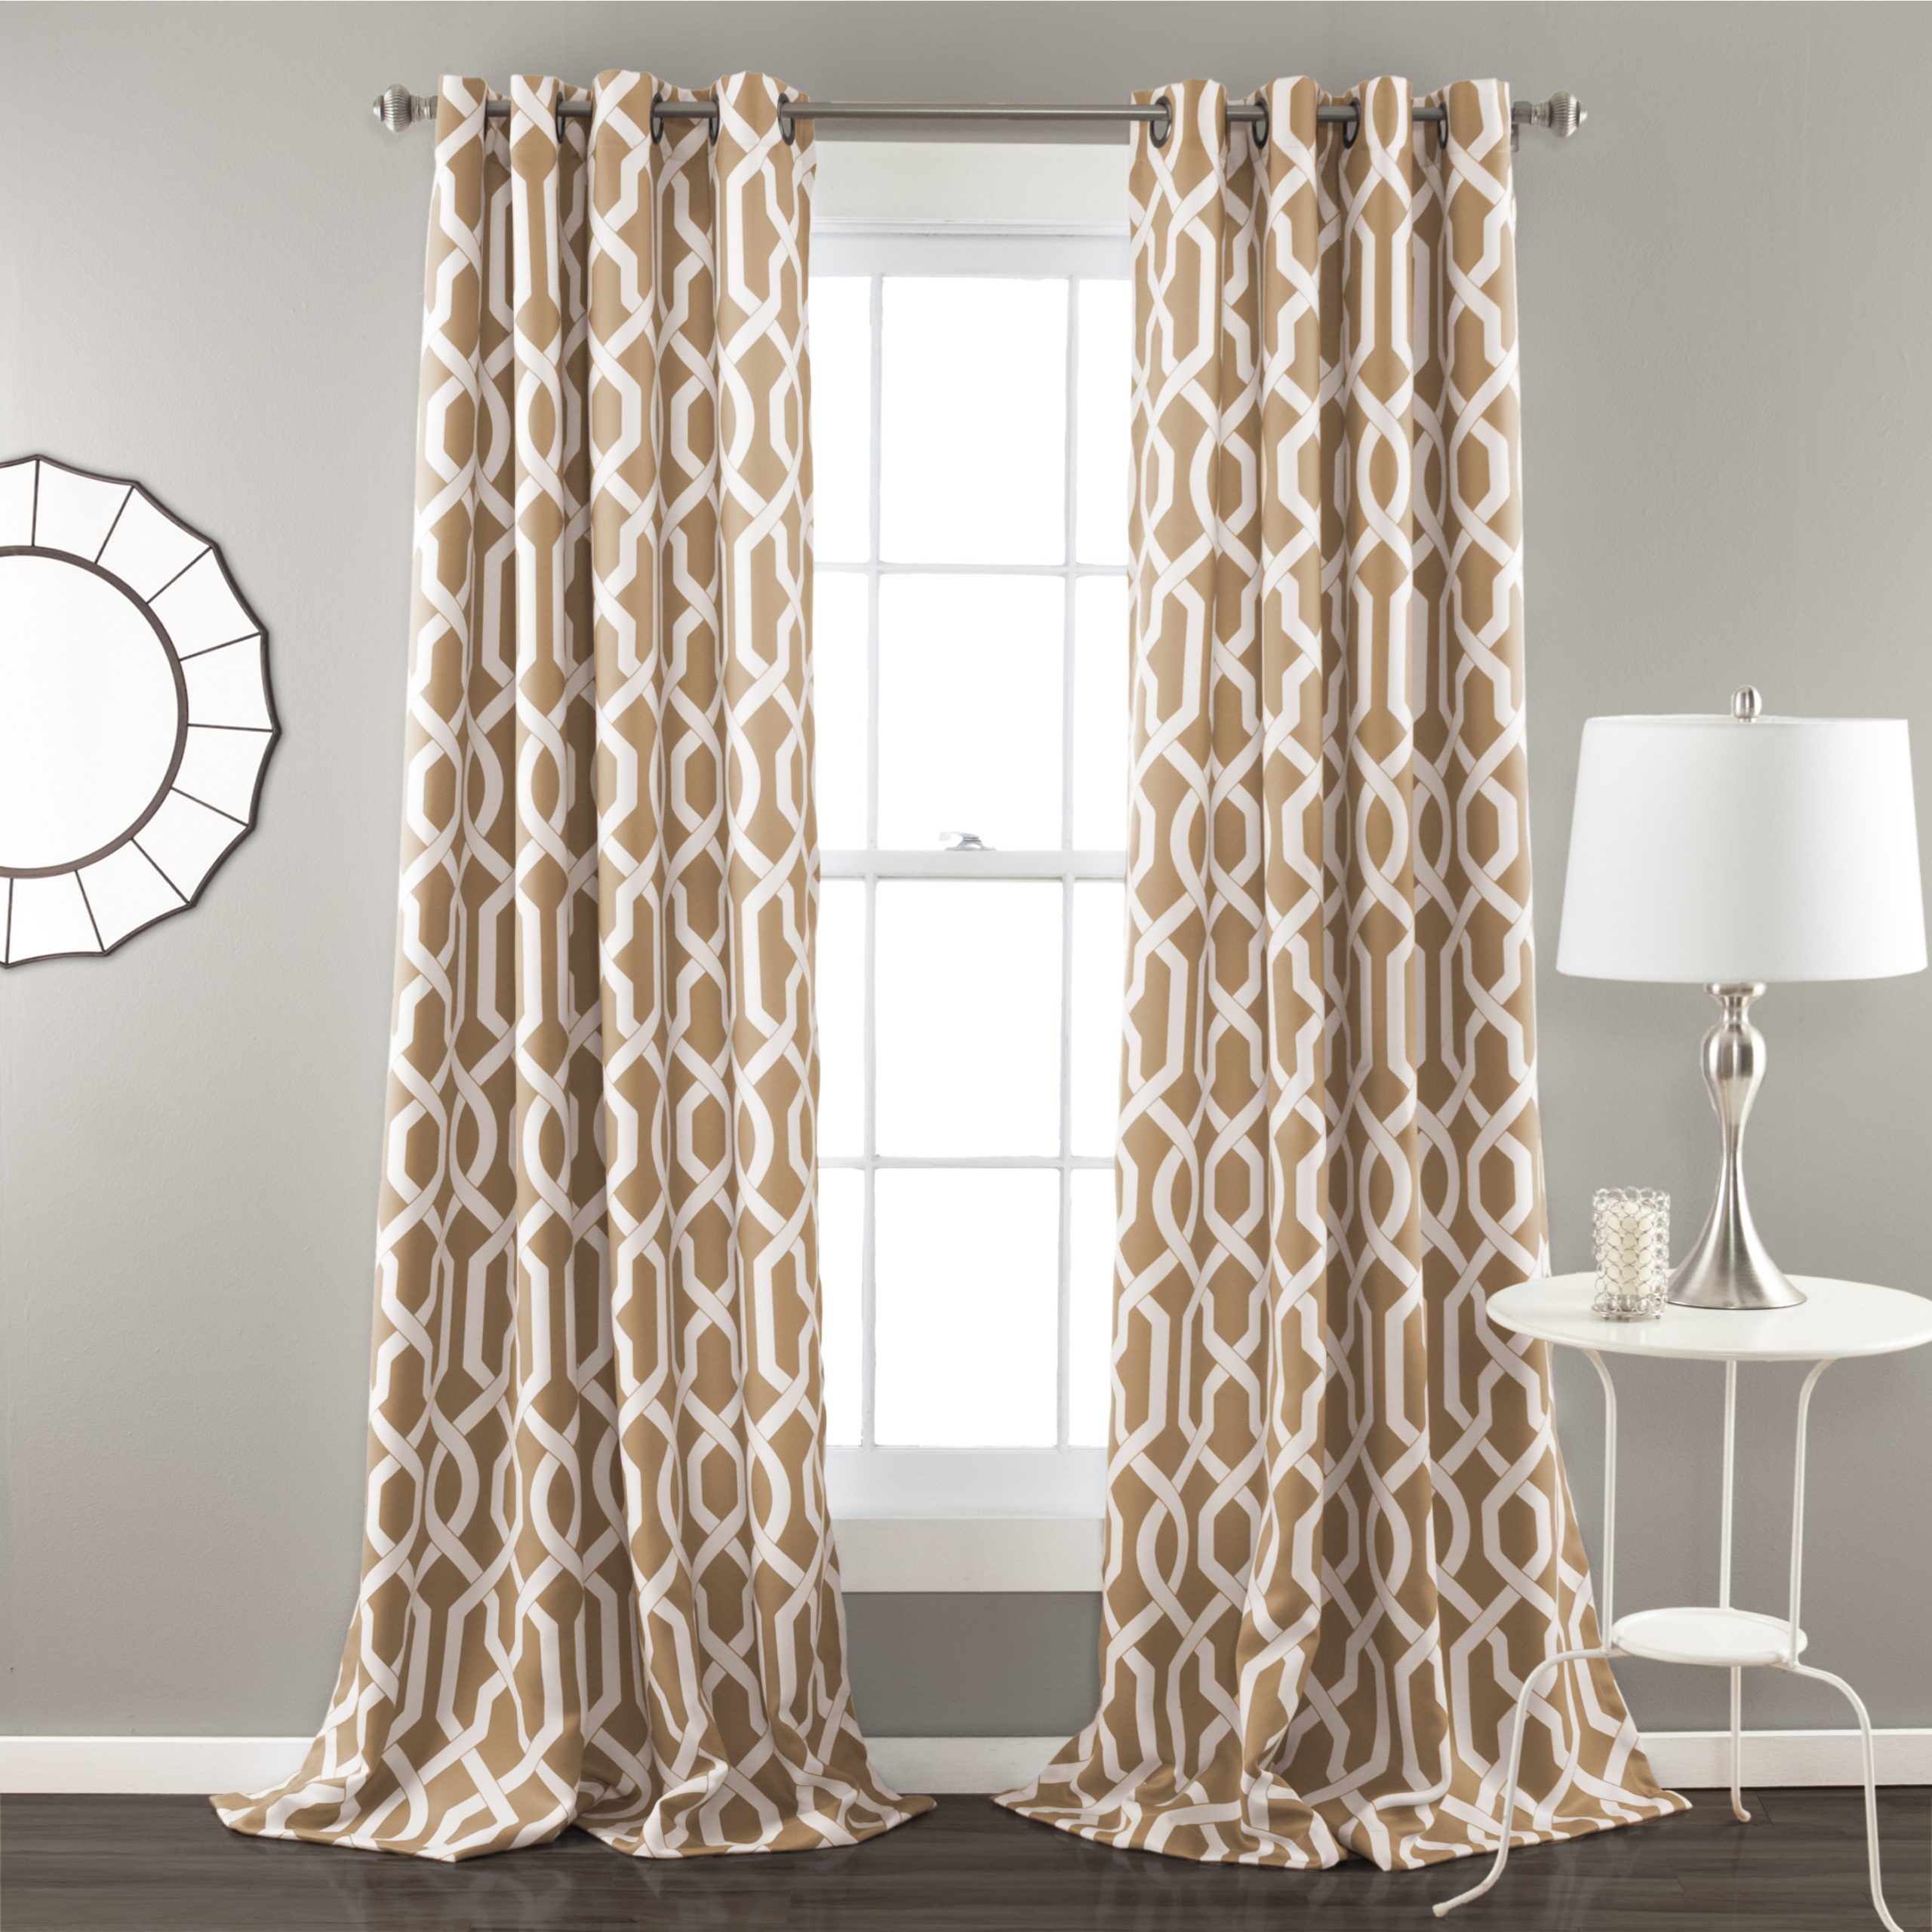 Best And Newest Details About Edward Trellis Room Darkening Window Curtain Taupe Set 52x84 Intended For Kaiden Geometric Room Darkening Window Curtains (View 10 of 20)